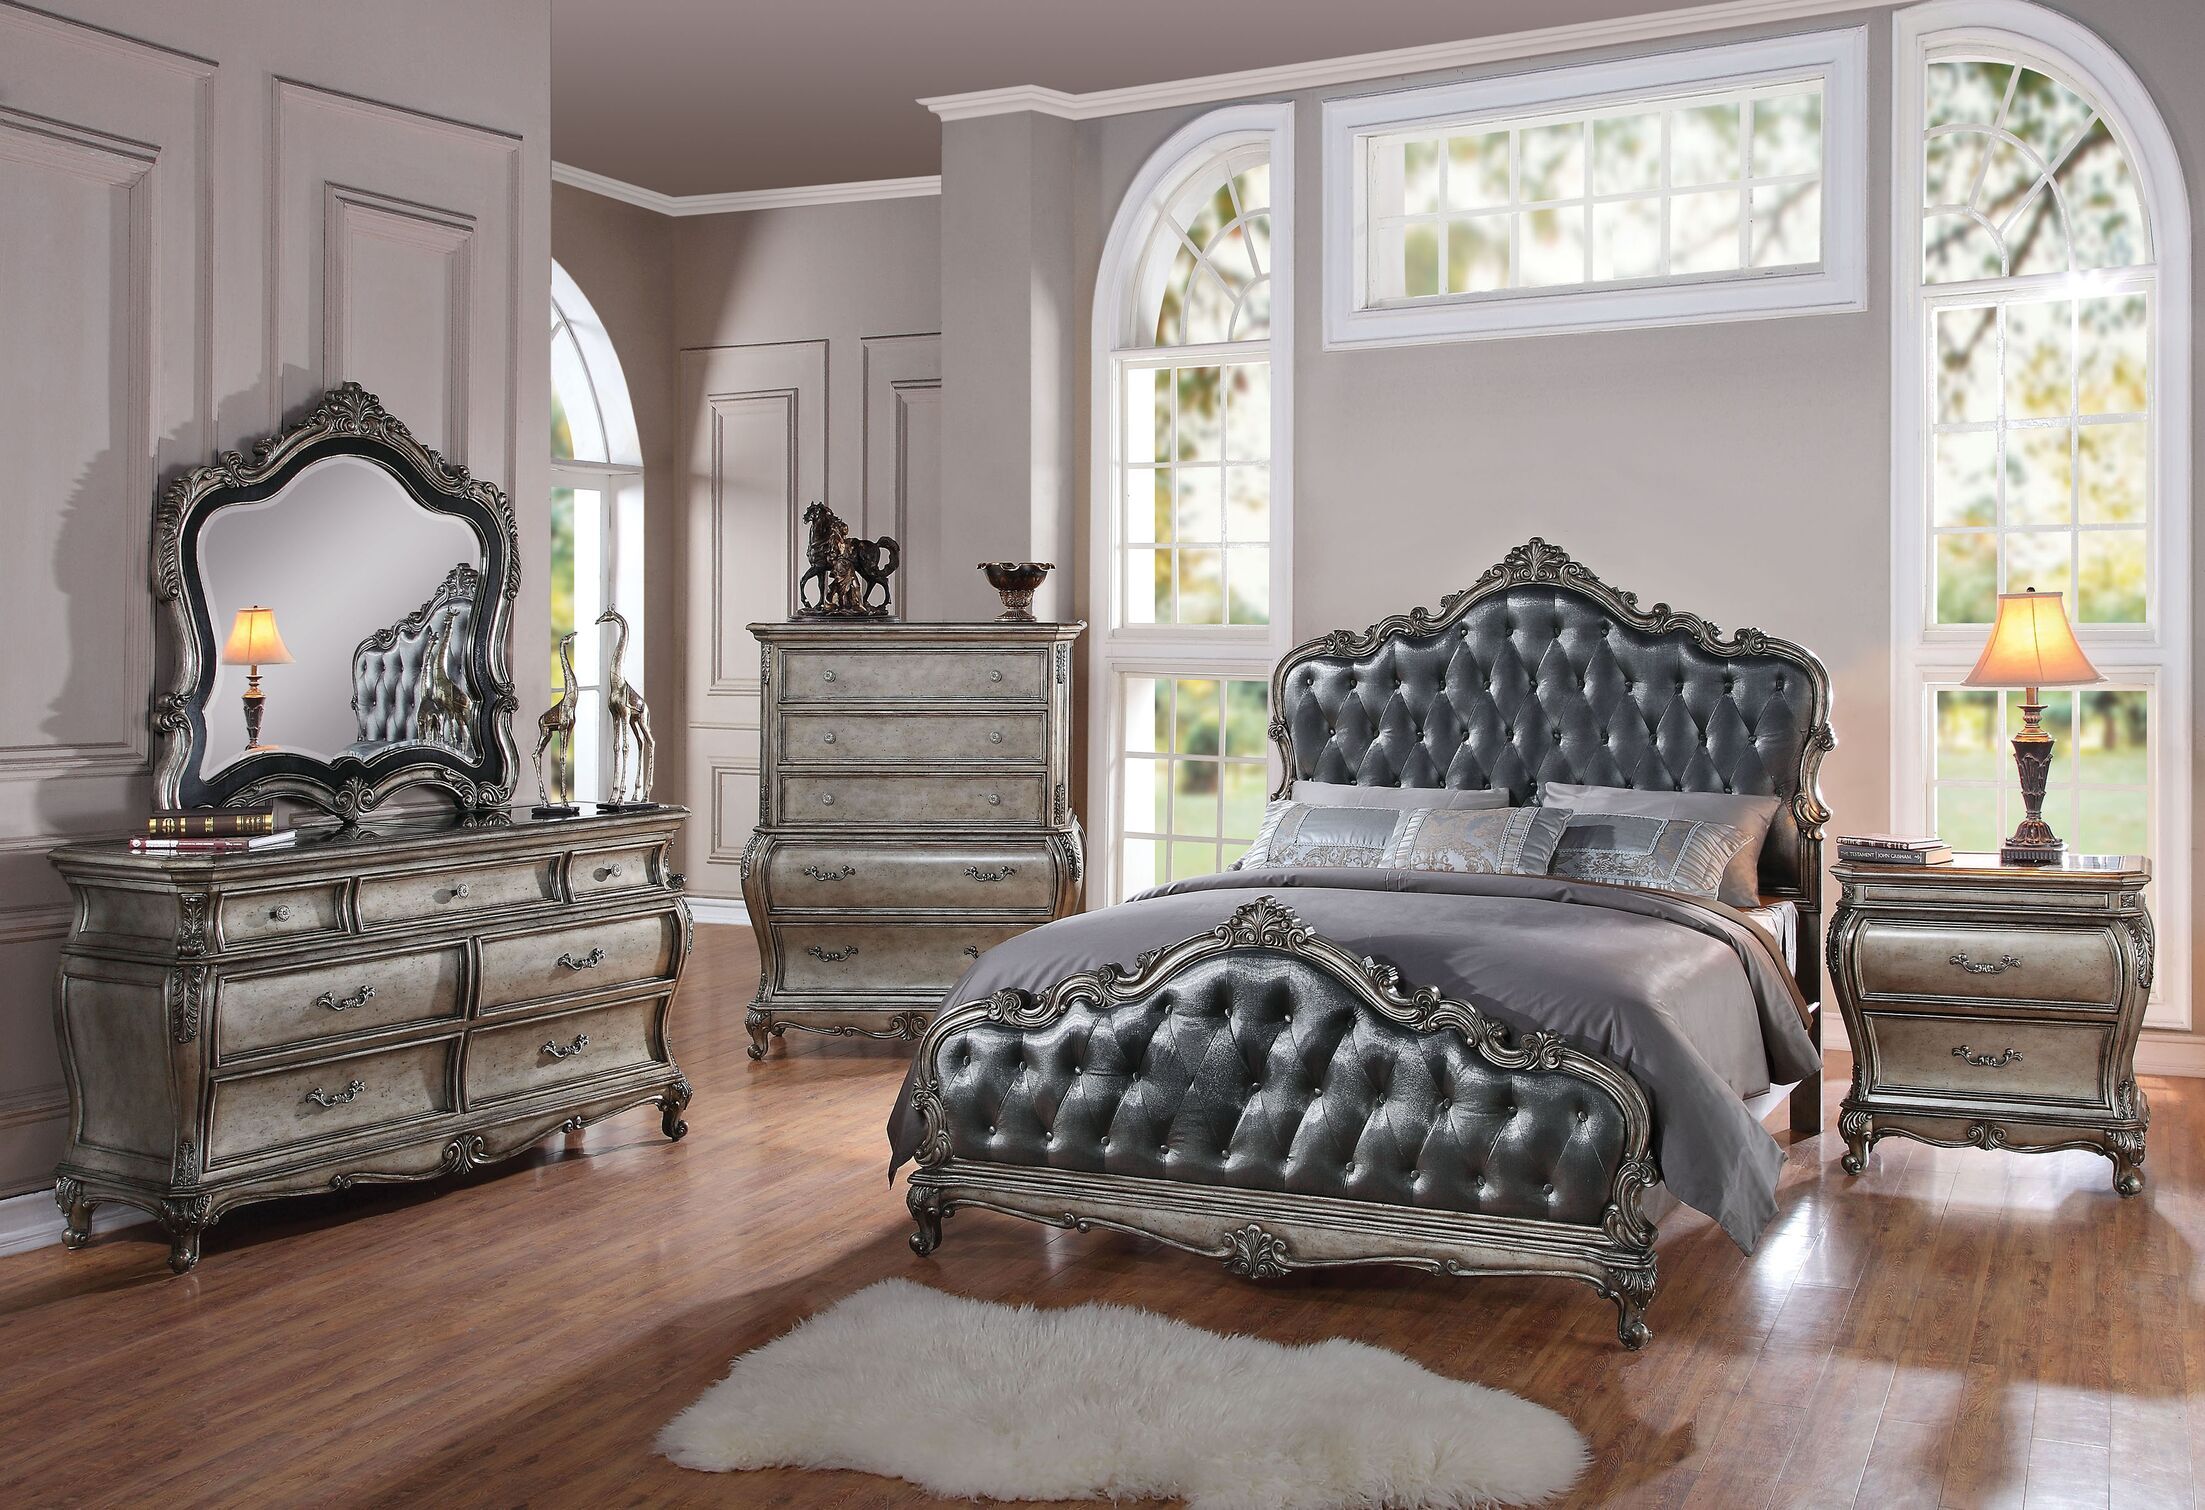 Casanovia Tufted Upholstered Panel Bed Size: Eastern King, Color: Antique Platinum/Silver Gray